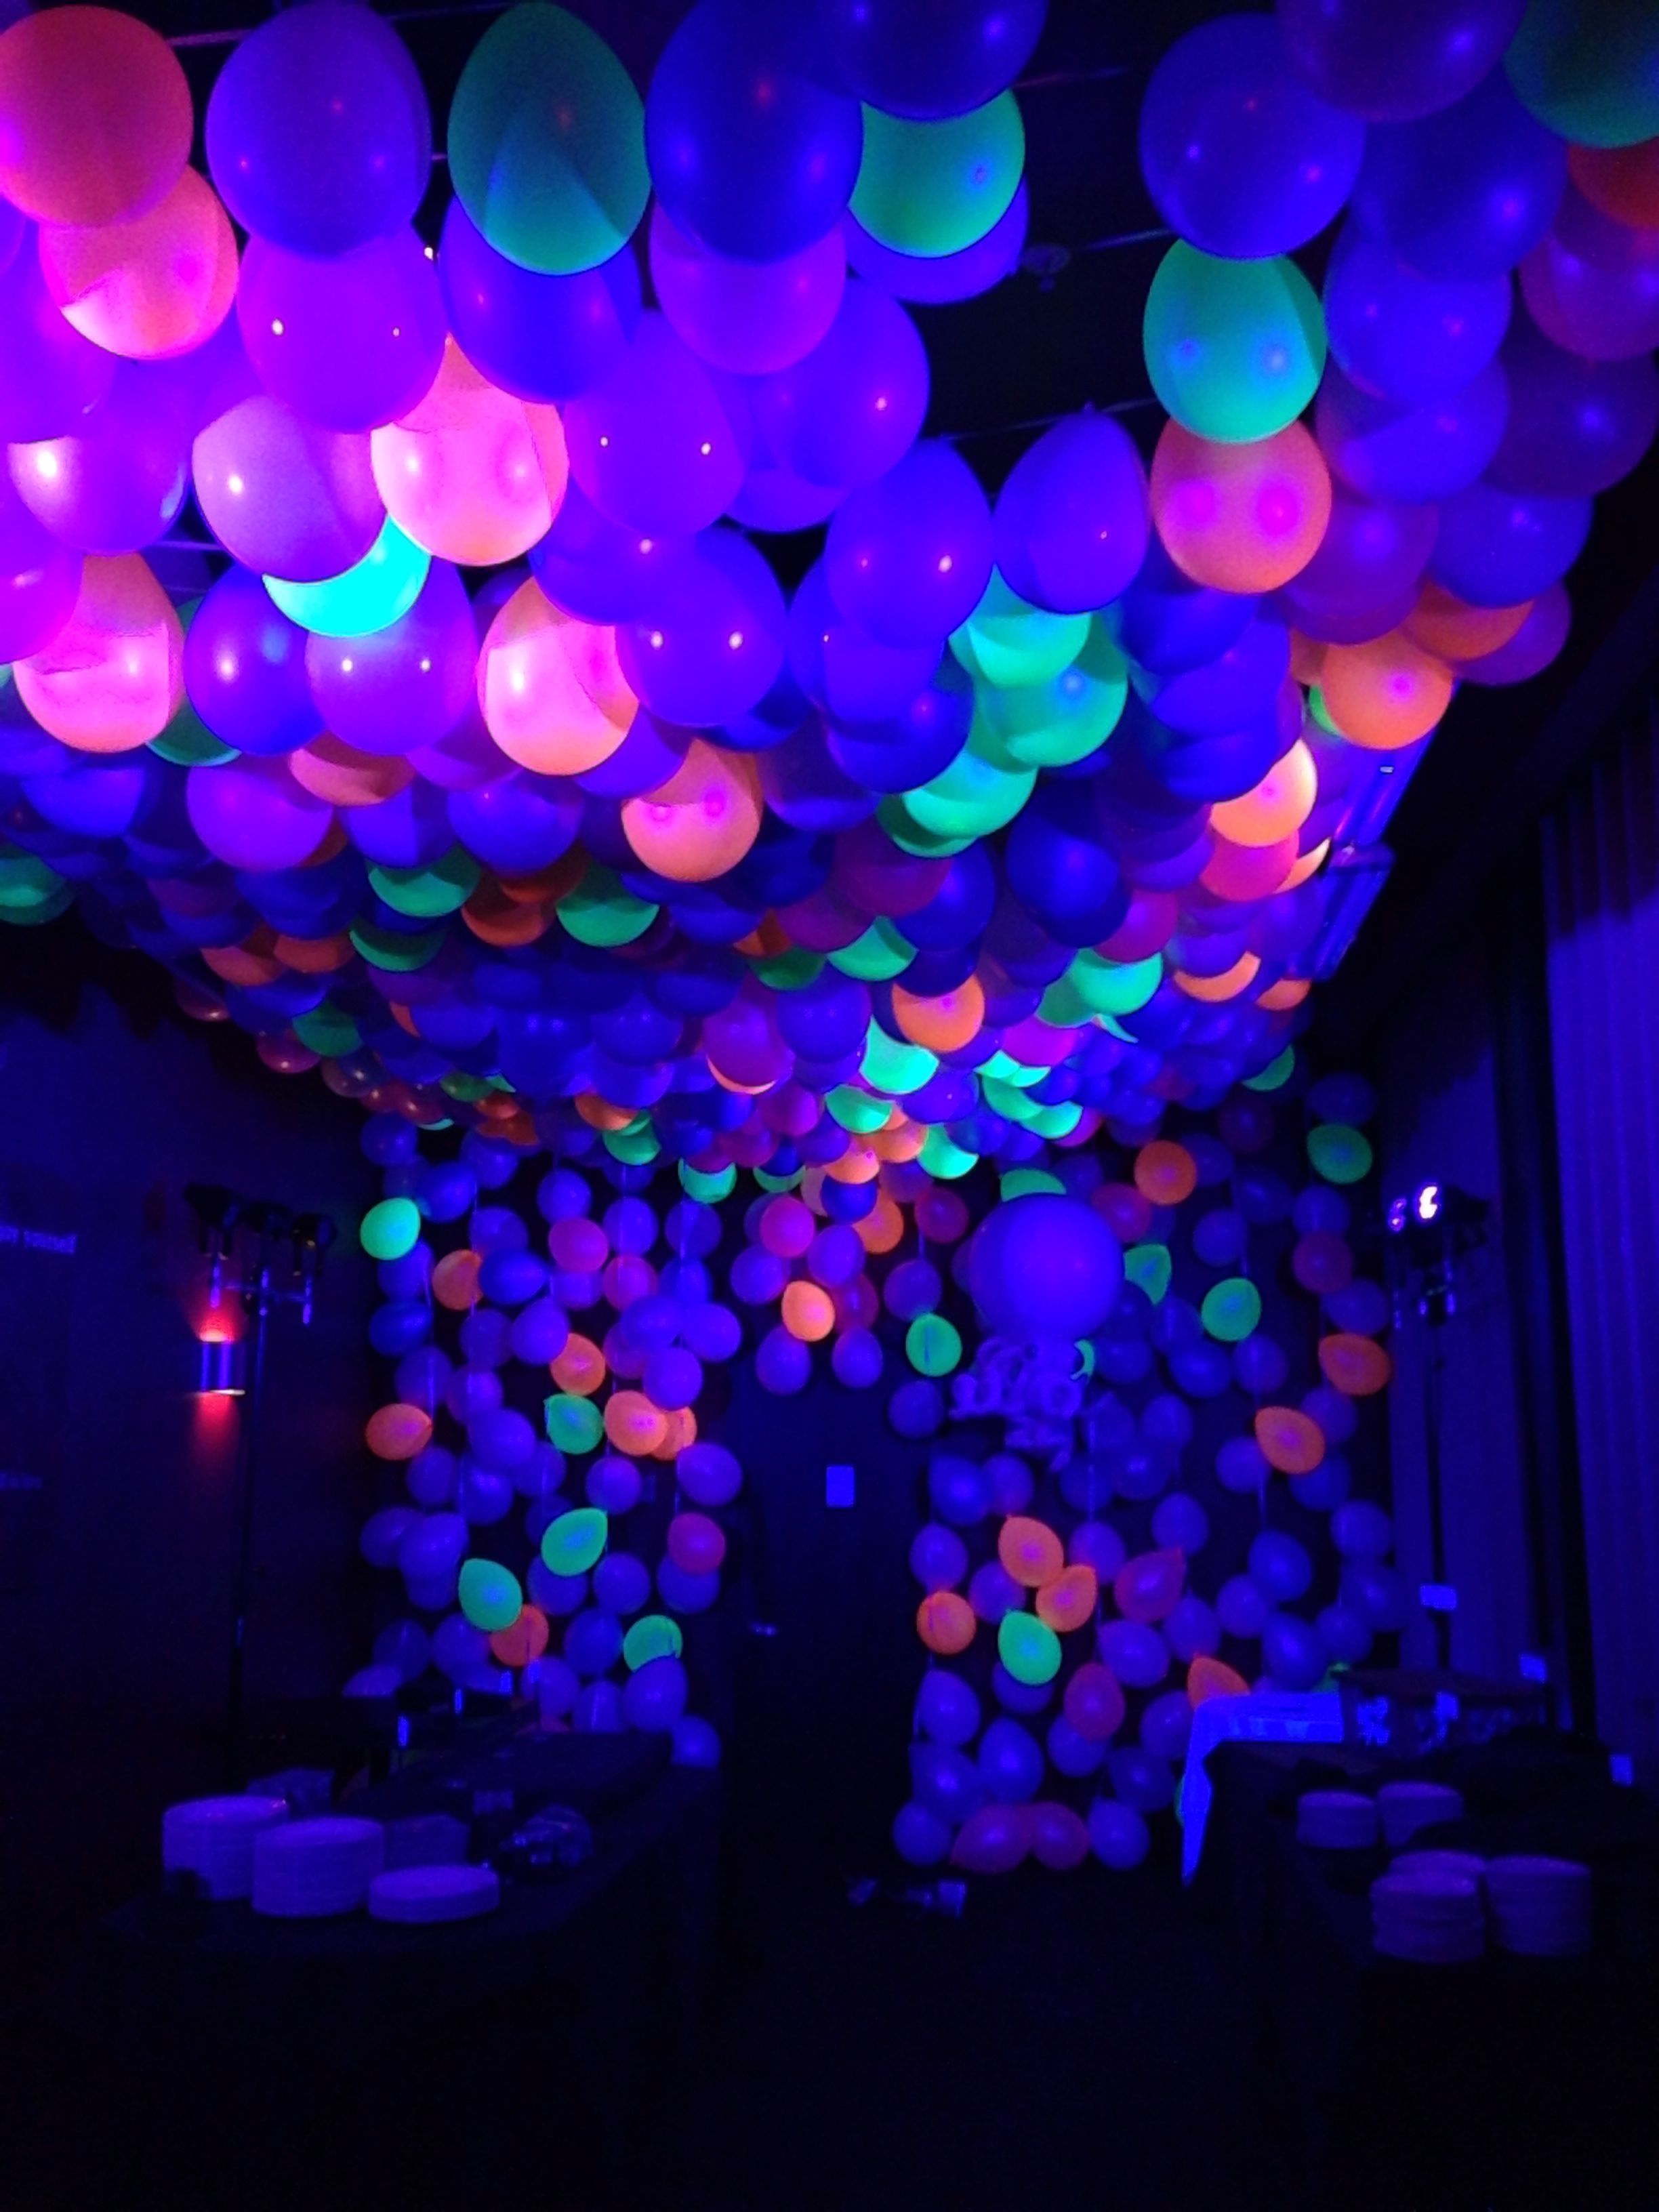 Blacklight Lamp Neon Ballon Ceiling With Black Light Balloon Images